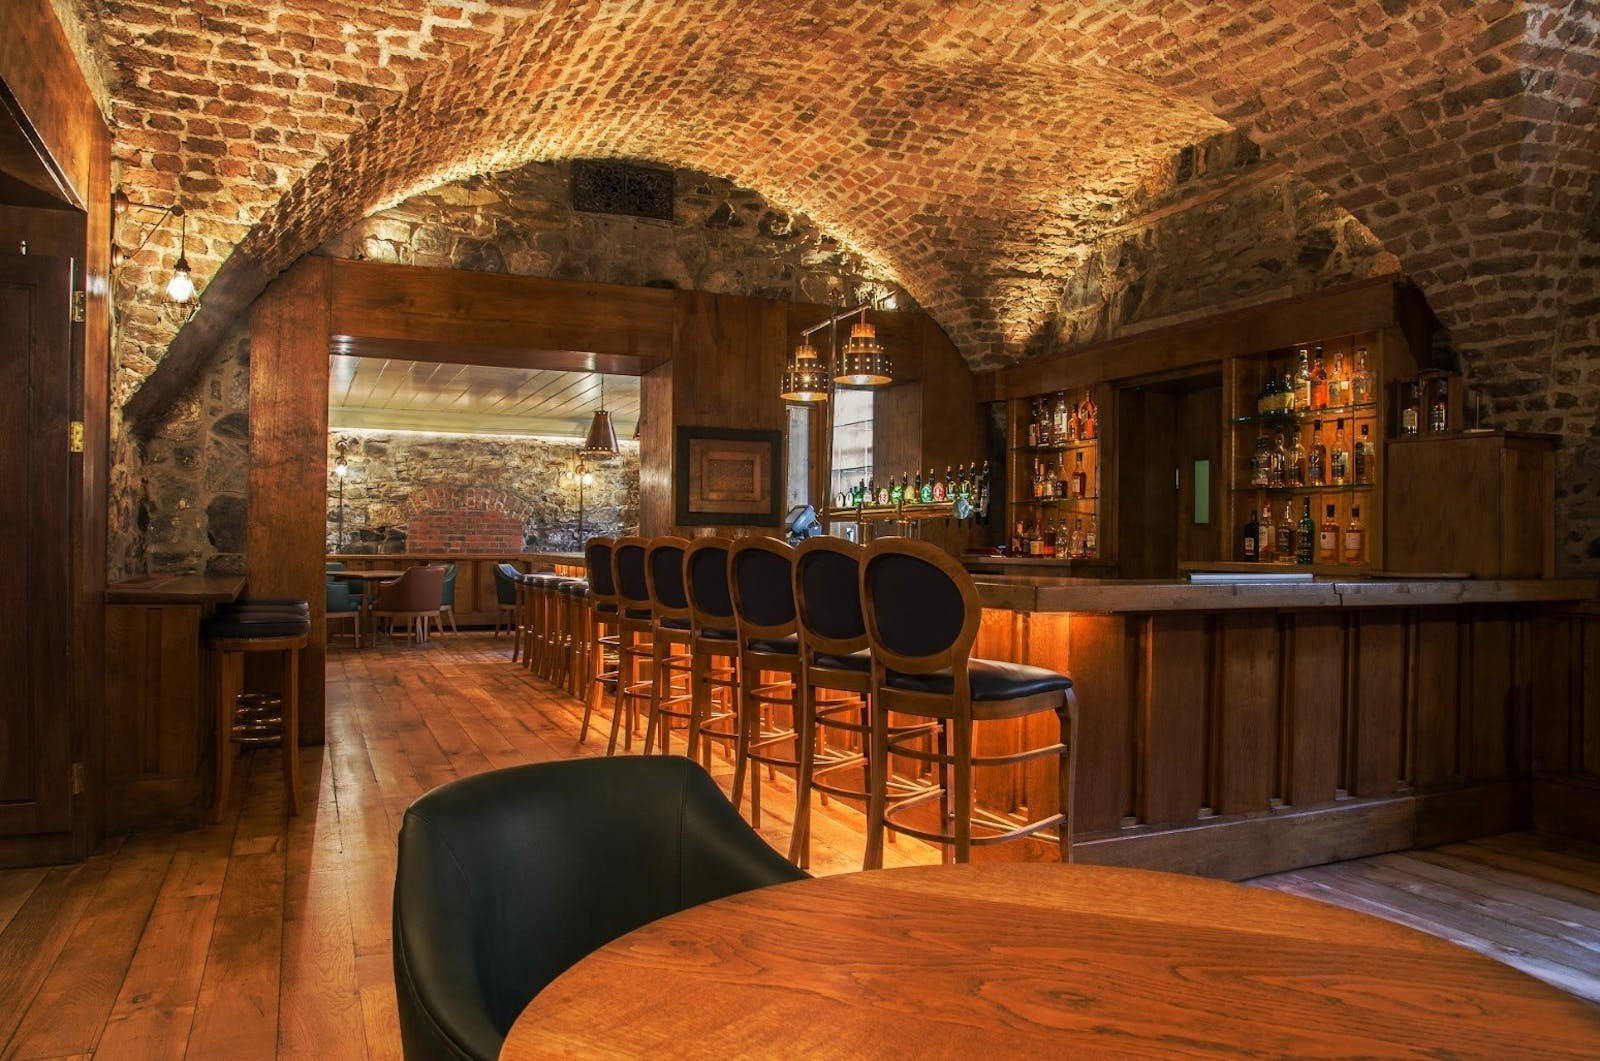 The Cellar Bar at The Merrion